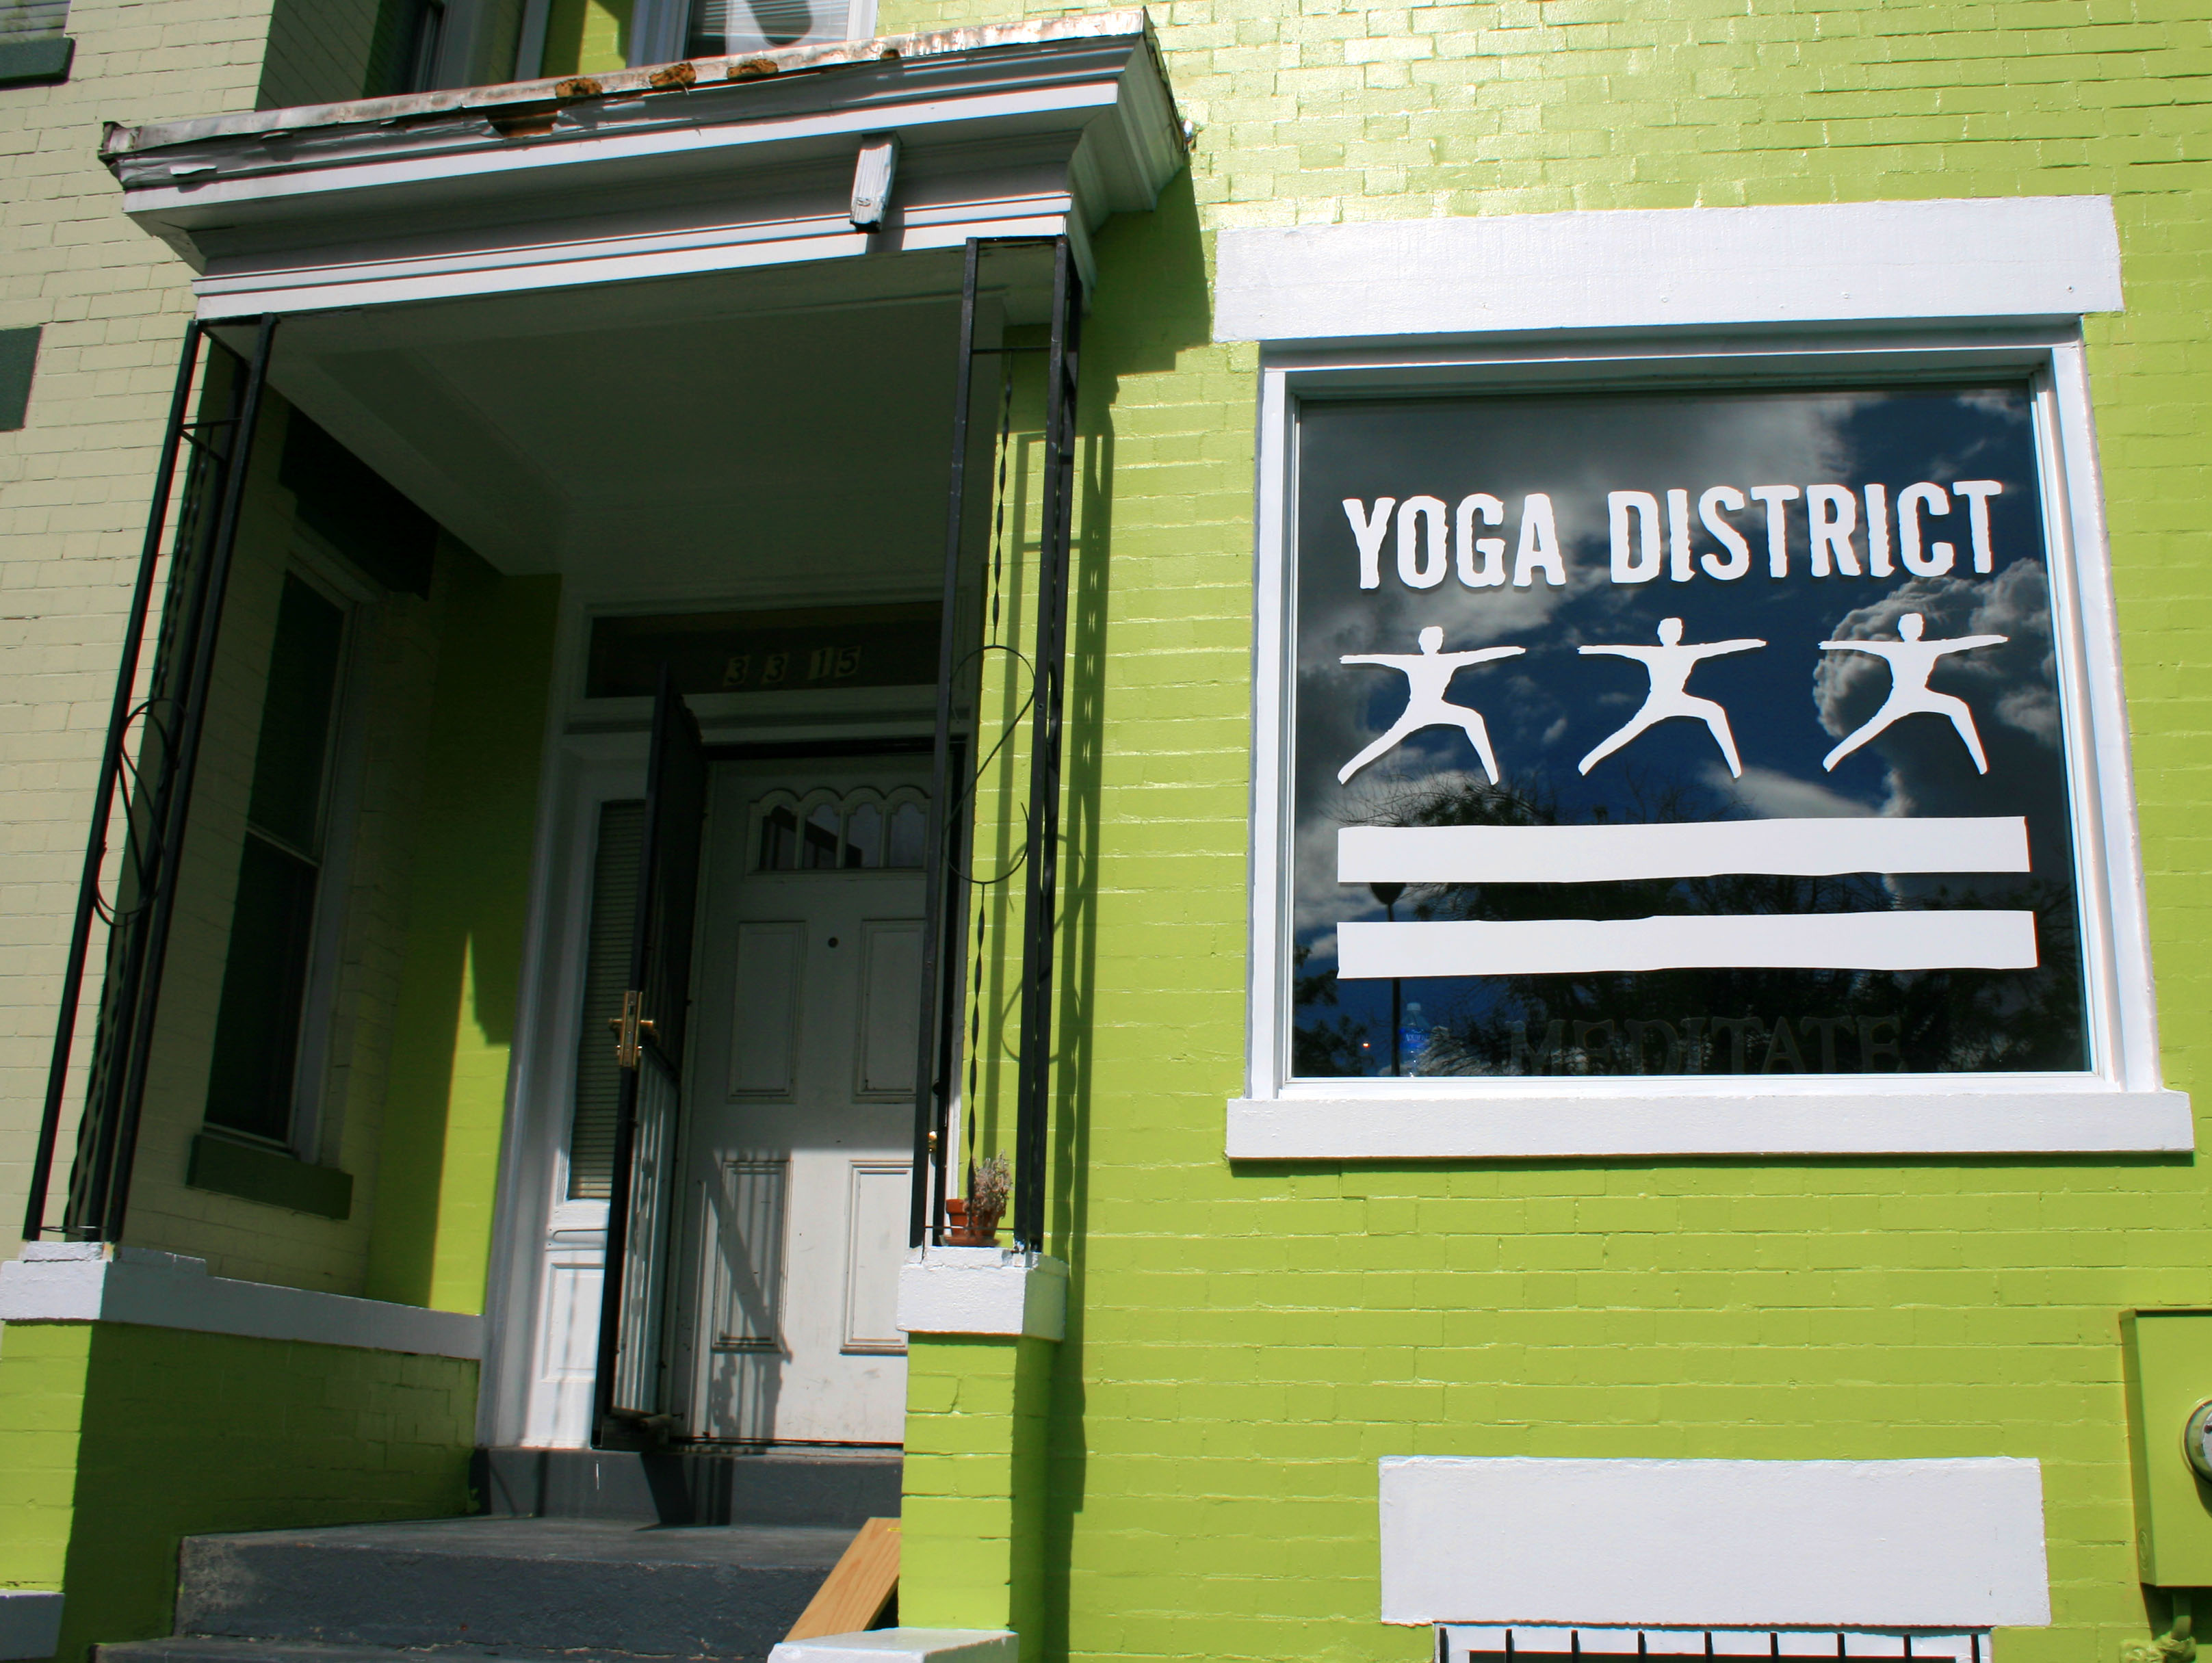 Yoga District